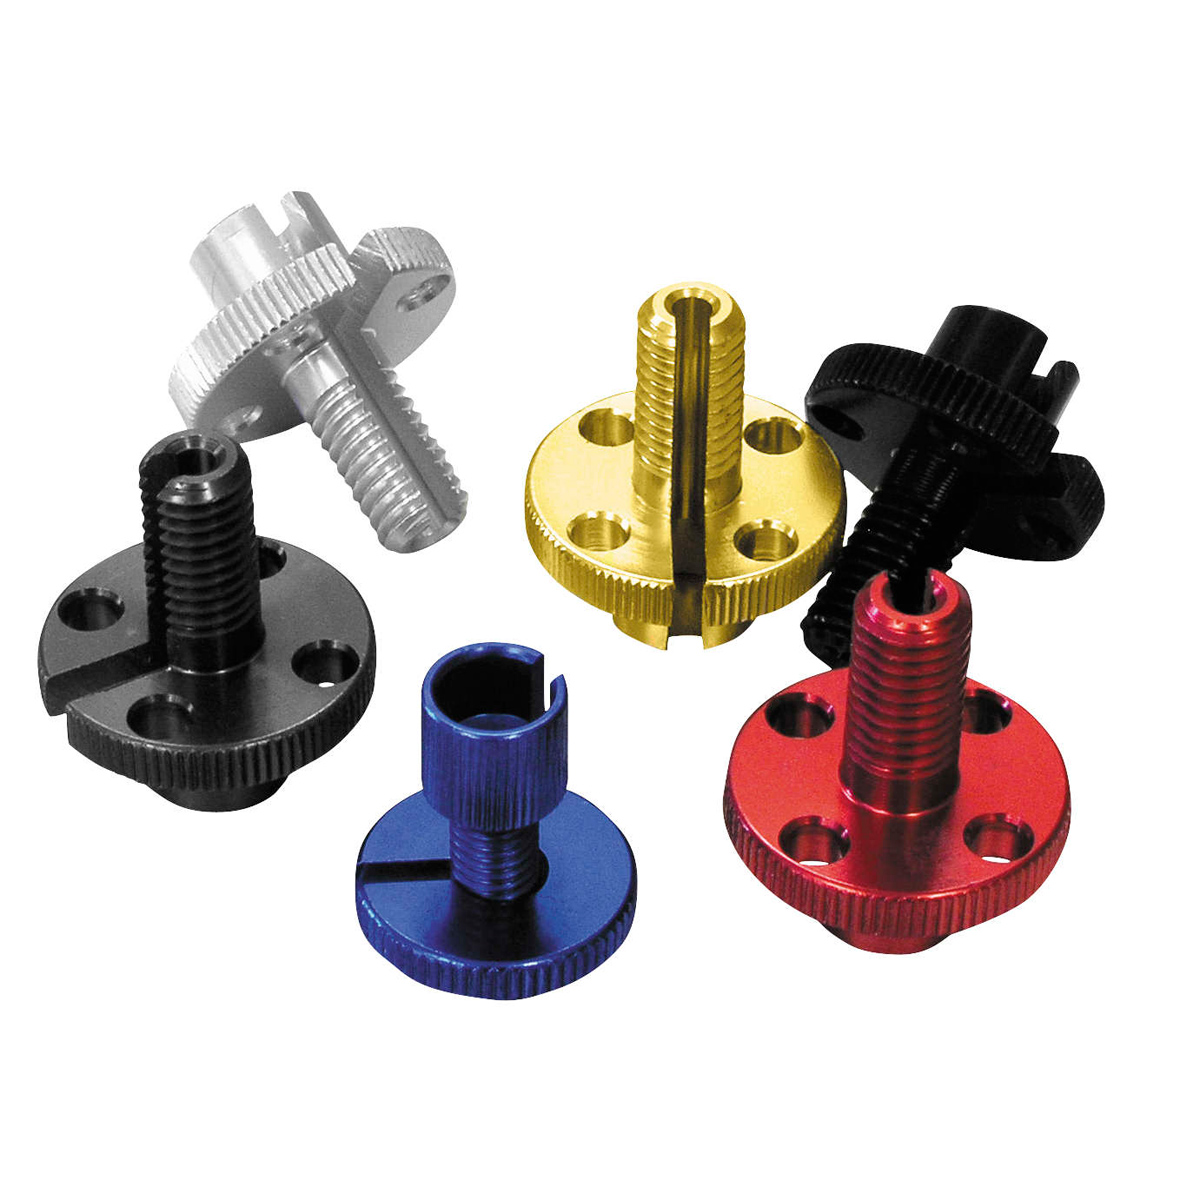 Pro-Bolt Cable Adjuster One Piece M10 Thread - Gold